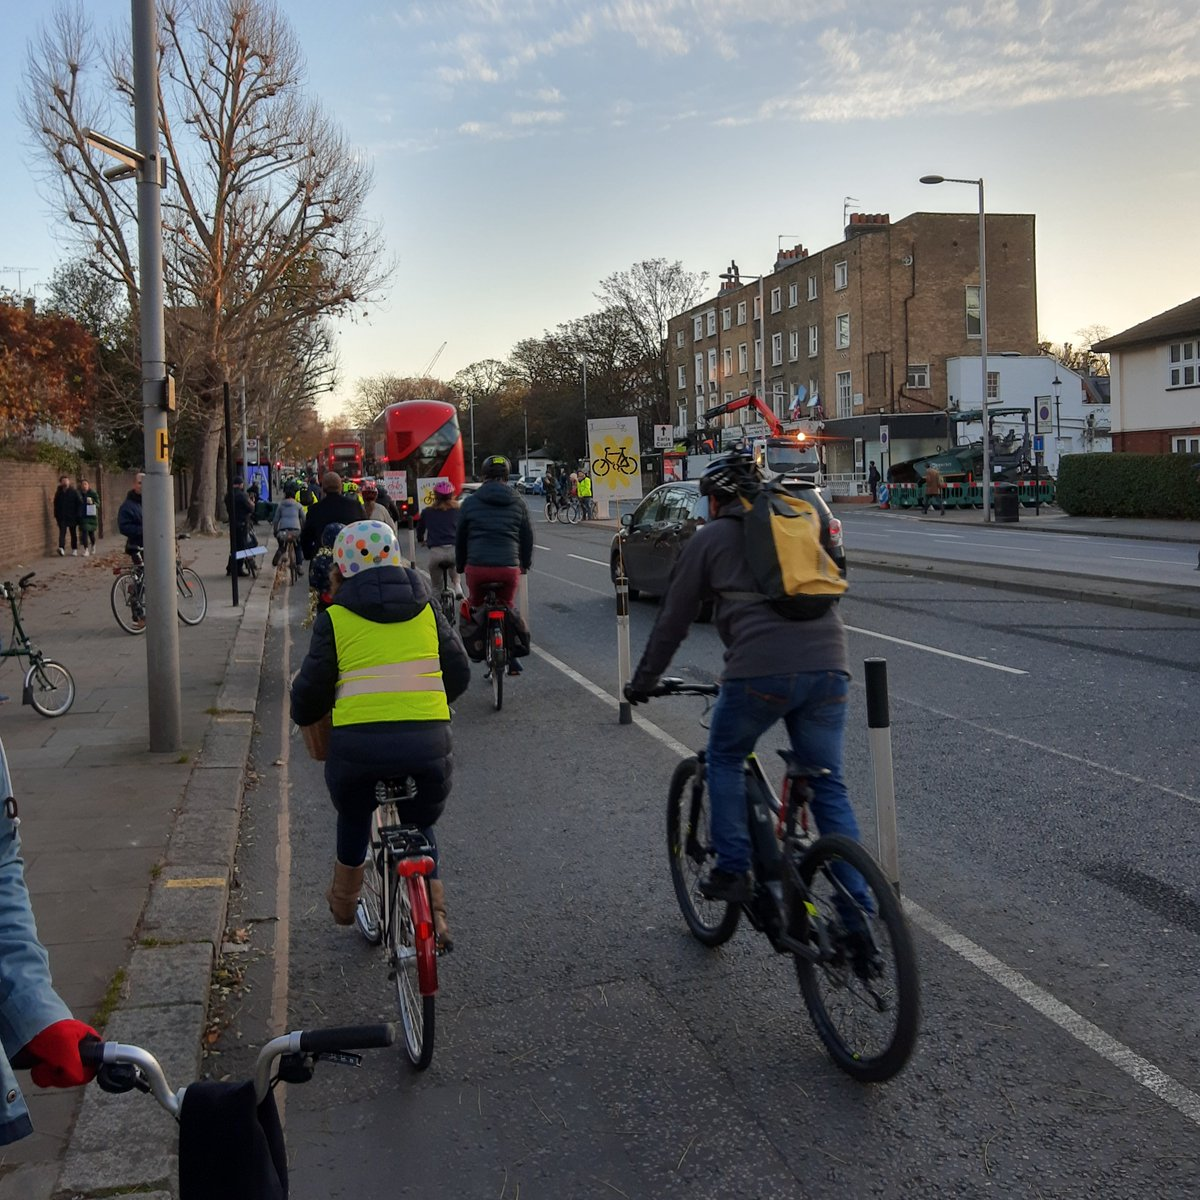 What an amazing turnout this morning! Pupils, parents/carers and locals showing their love and support in the hope they can #SaveTheLane along Kensington High Street 🚲 @RBKC @FoxPrimary #KensingtonHighStreet #BikeIsBest #ActiveTravel #StreetspaceForLondon